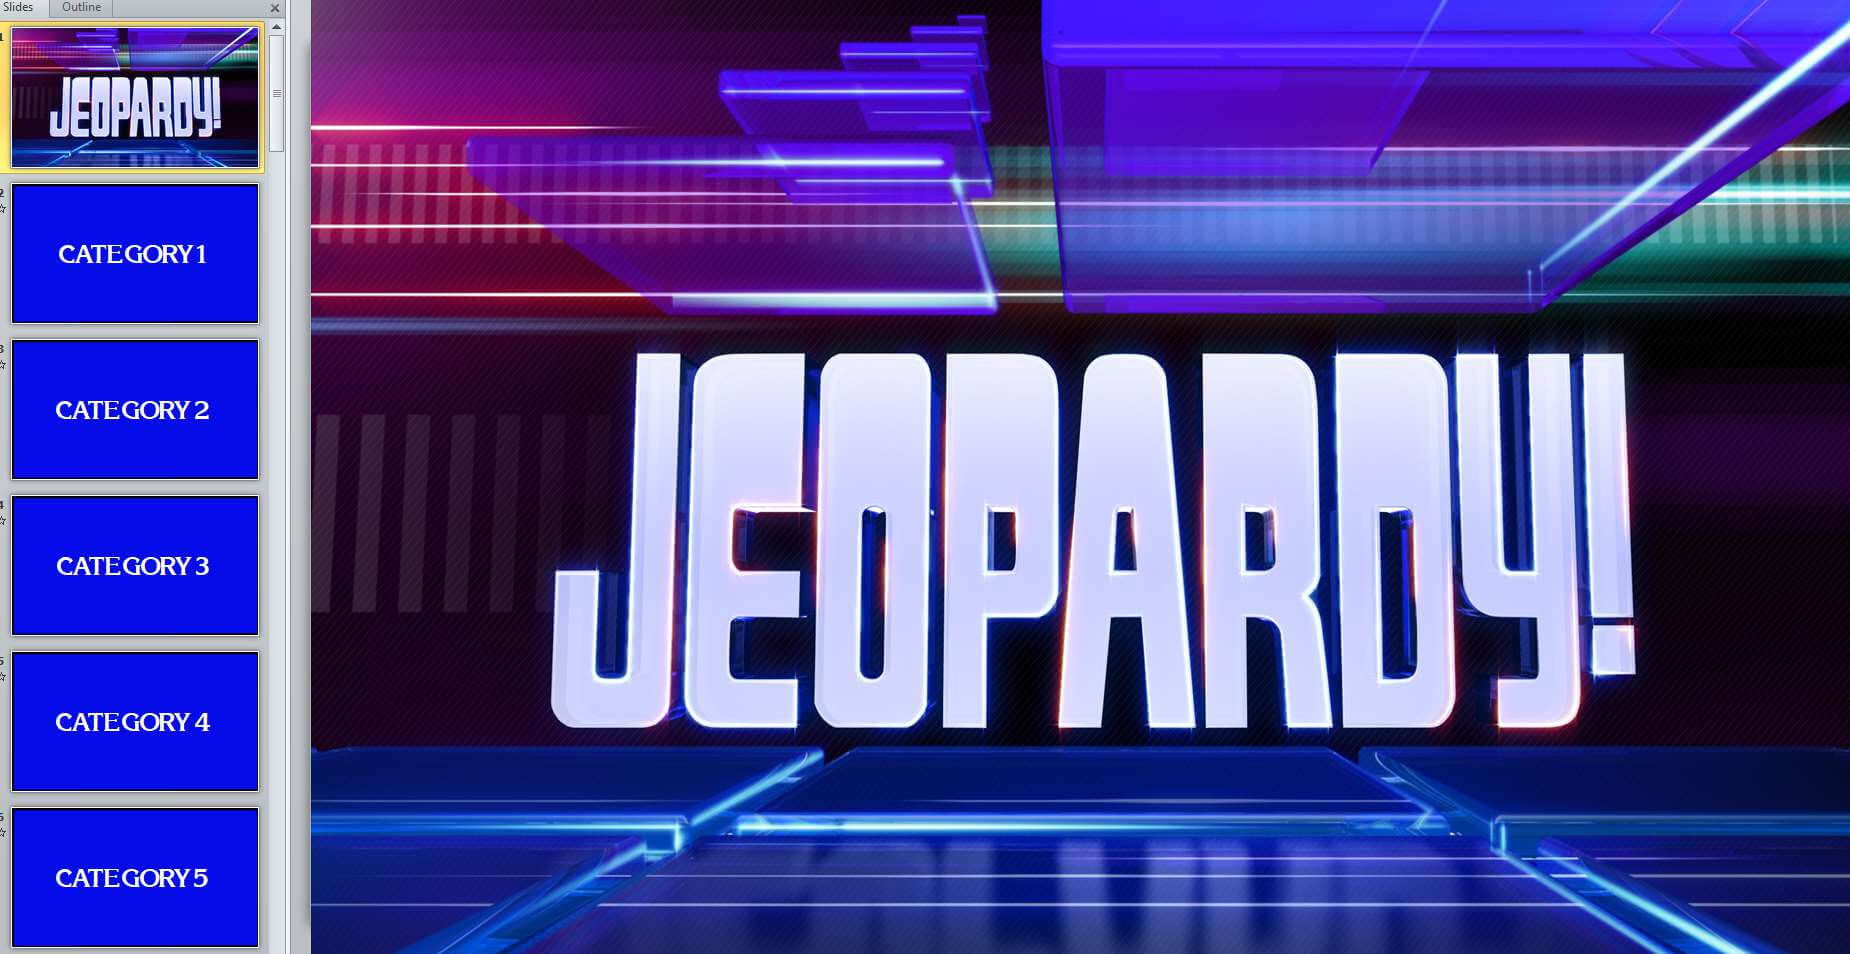 005 Jeopardy Powerpoint Template With Score Jeopardy2 Within Jeopardy Powerpoint Template With Score